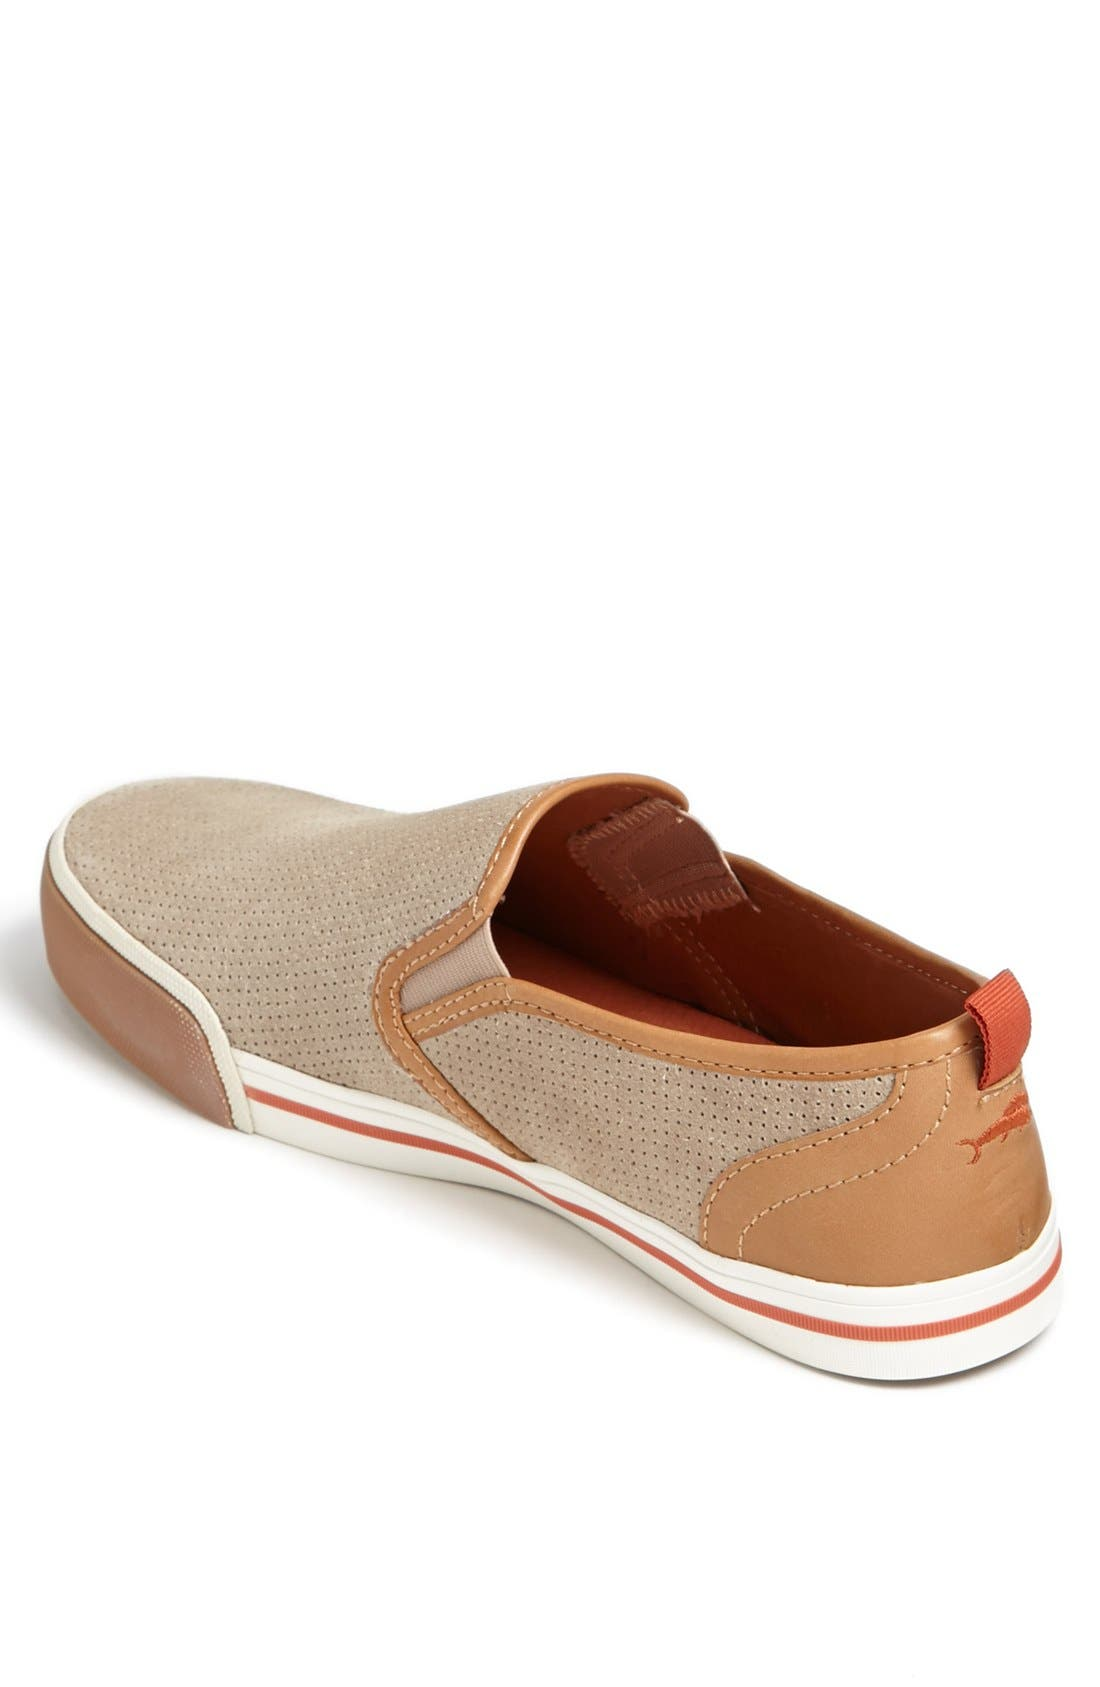 Alternate Image 2  - Tommy Bahama 'Beach Dweller' Slip-On